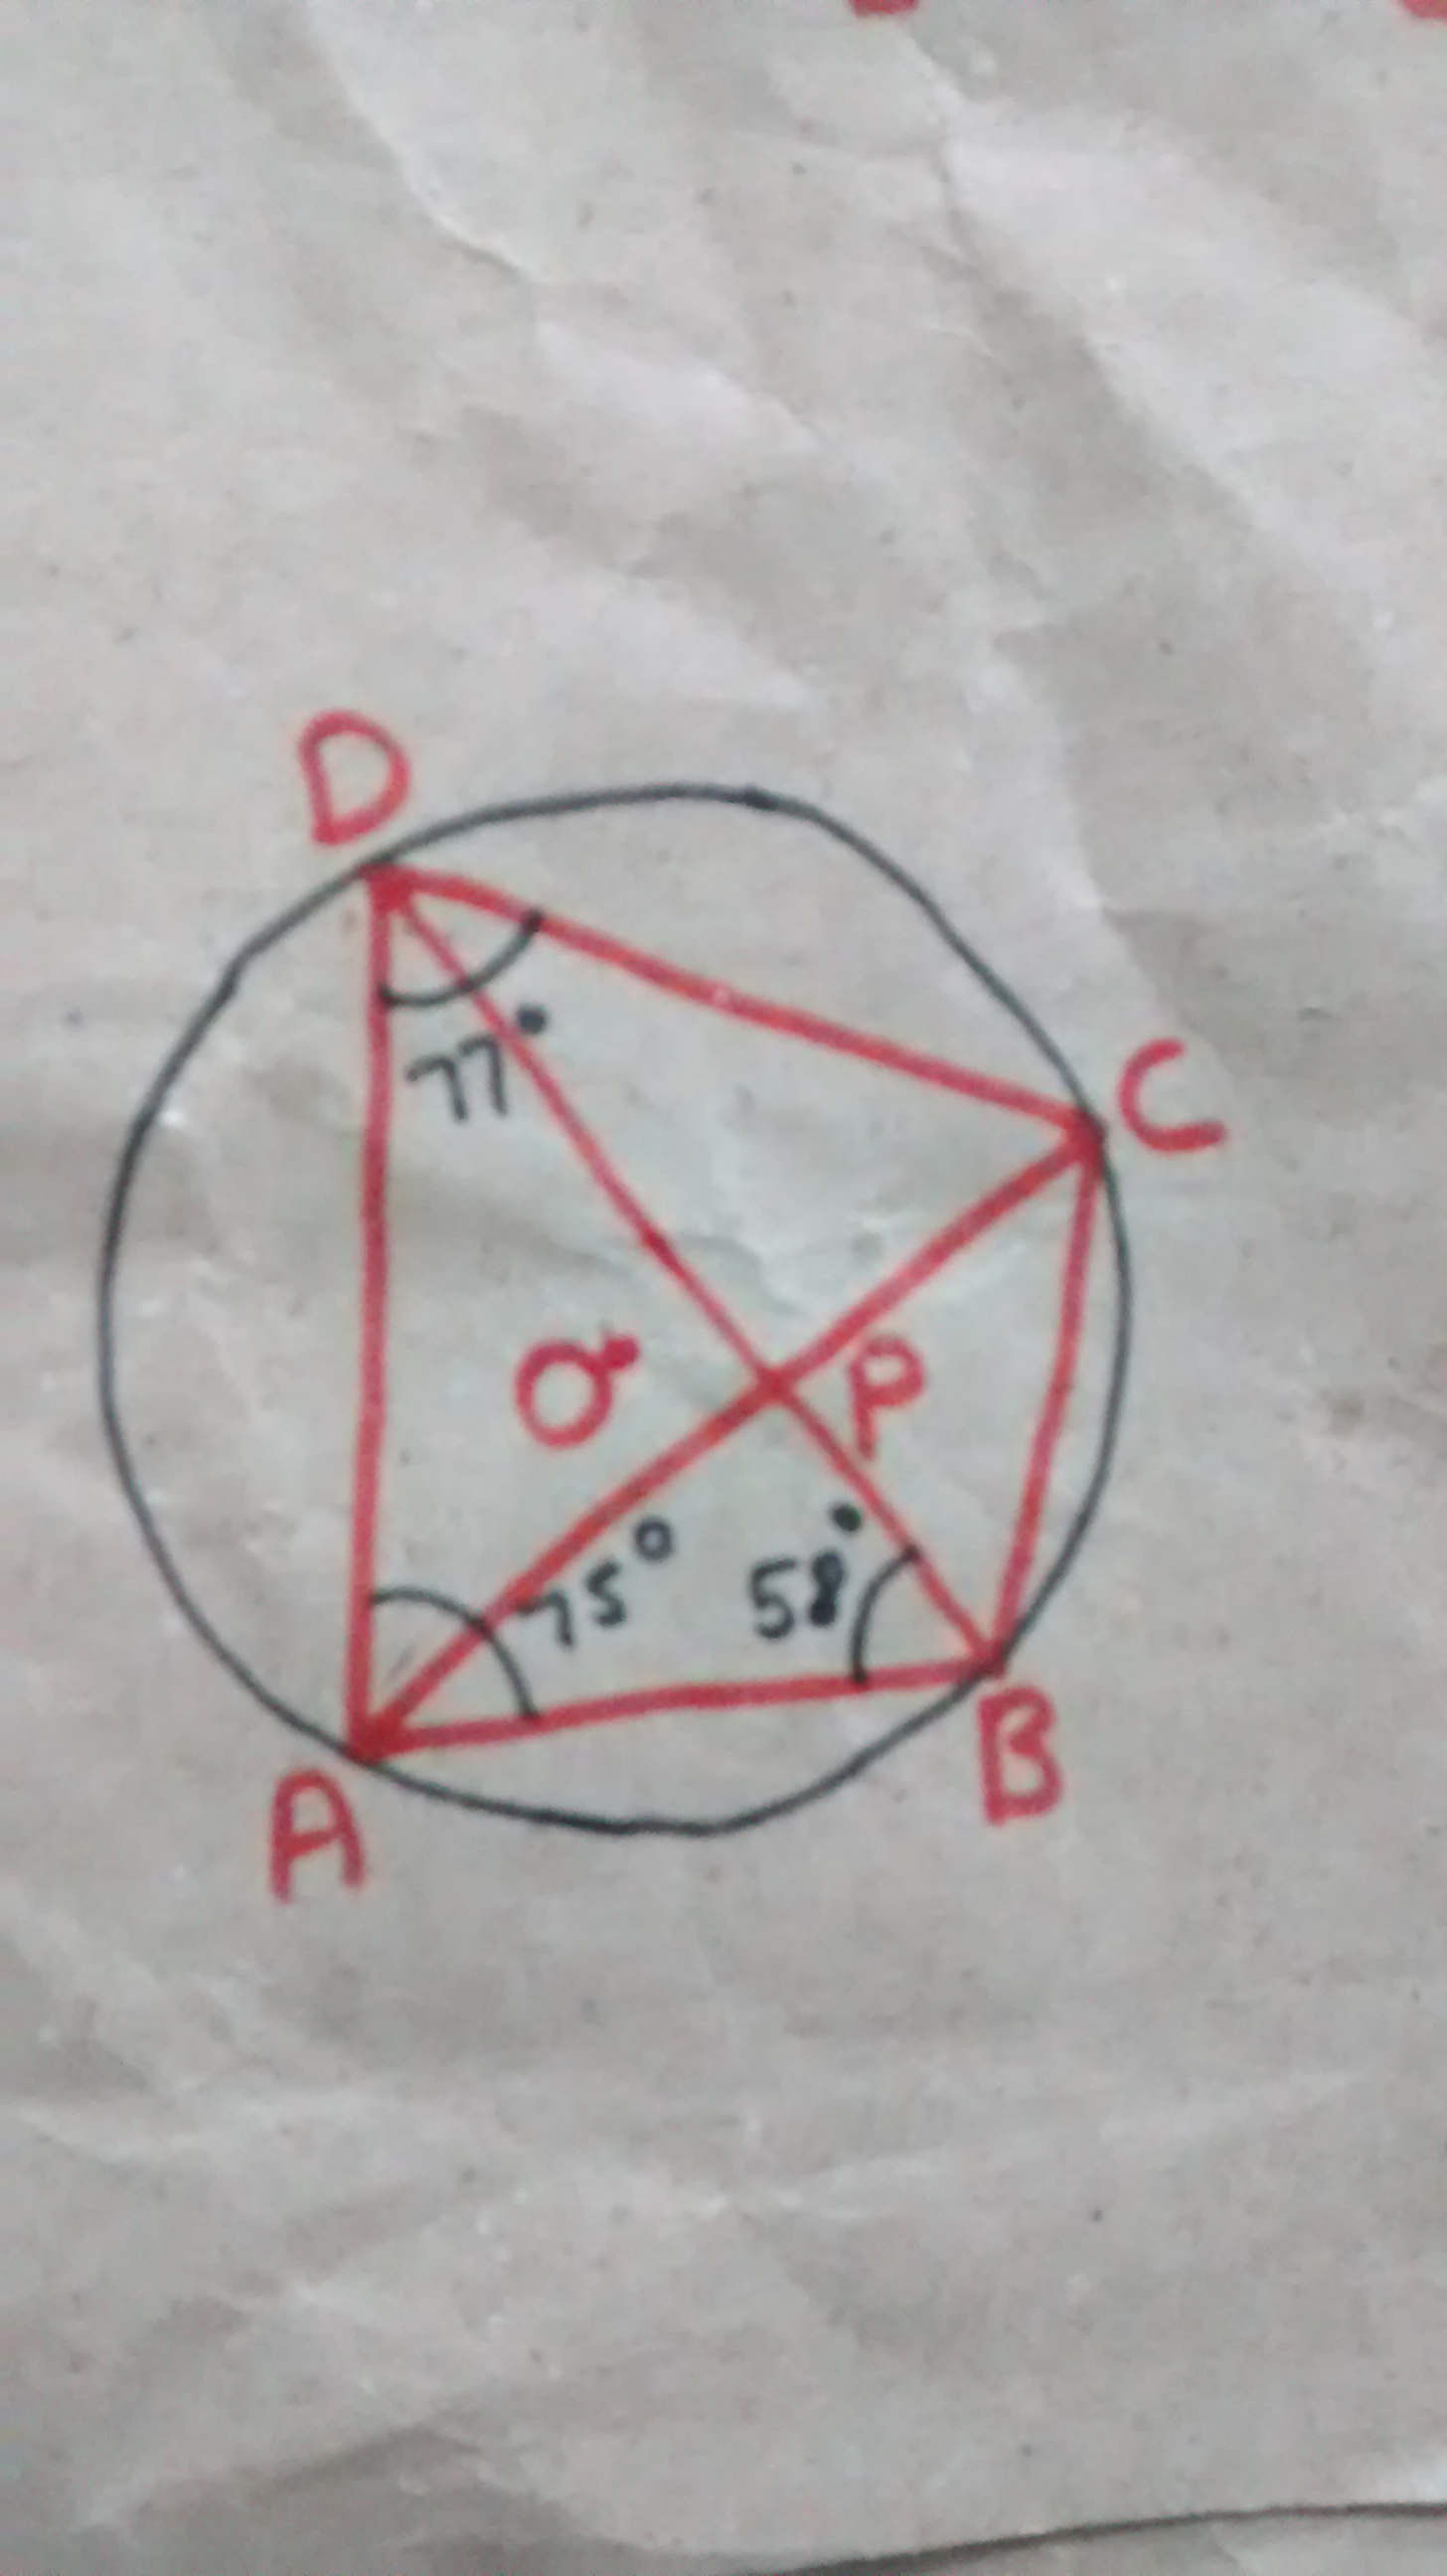 Questions And Answers Of Circles Cyclic Quadrilaterals Of Cbse Class 9 Mathematics